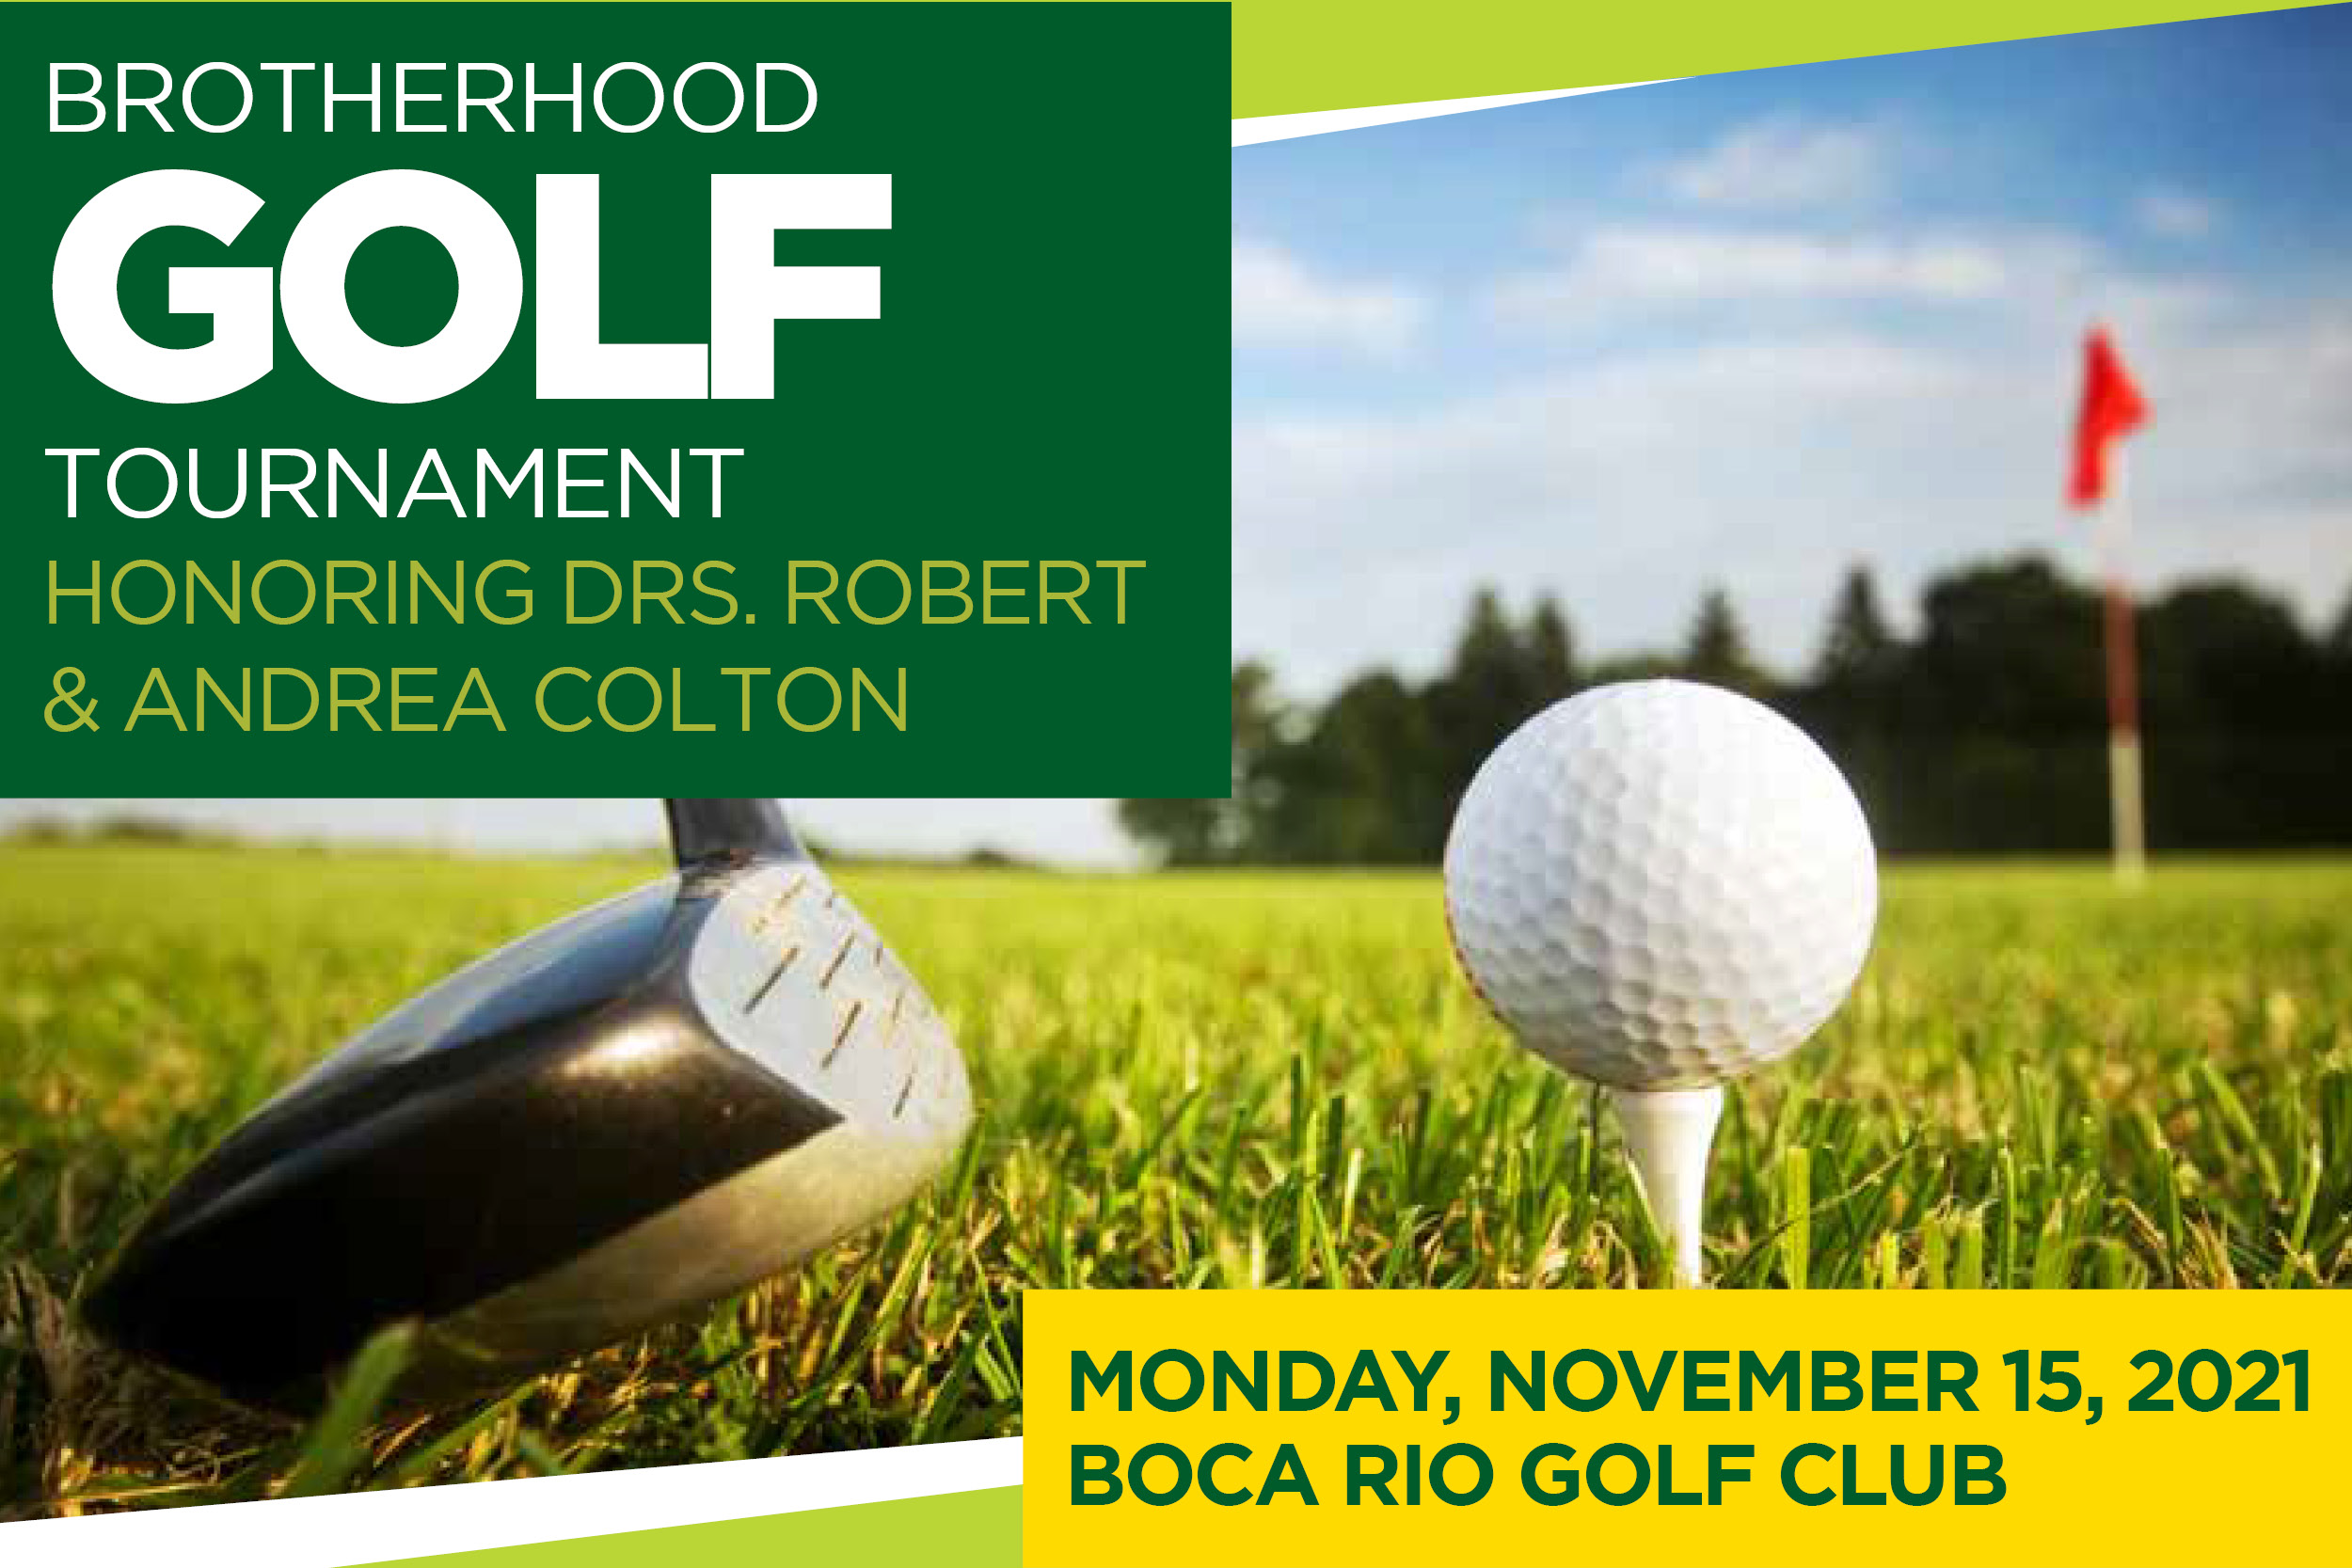 Brotherhood Golf Tournament Honoring Drs. Robert and Andrea Colton event graphic for Temple Beth El